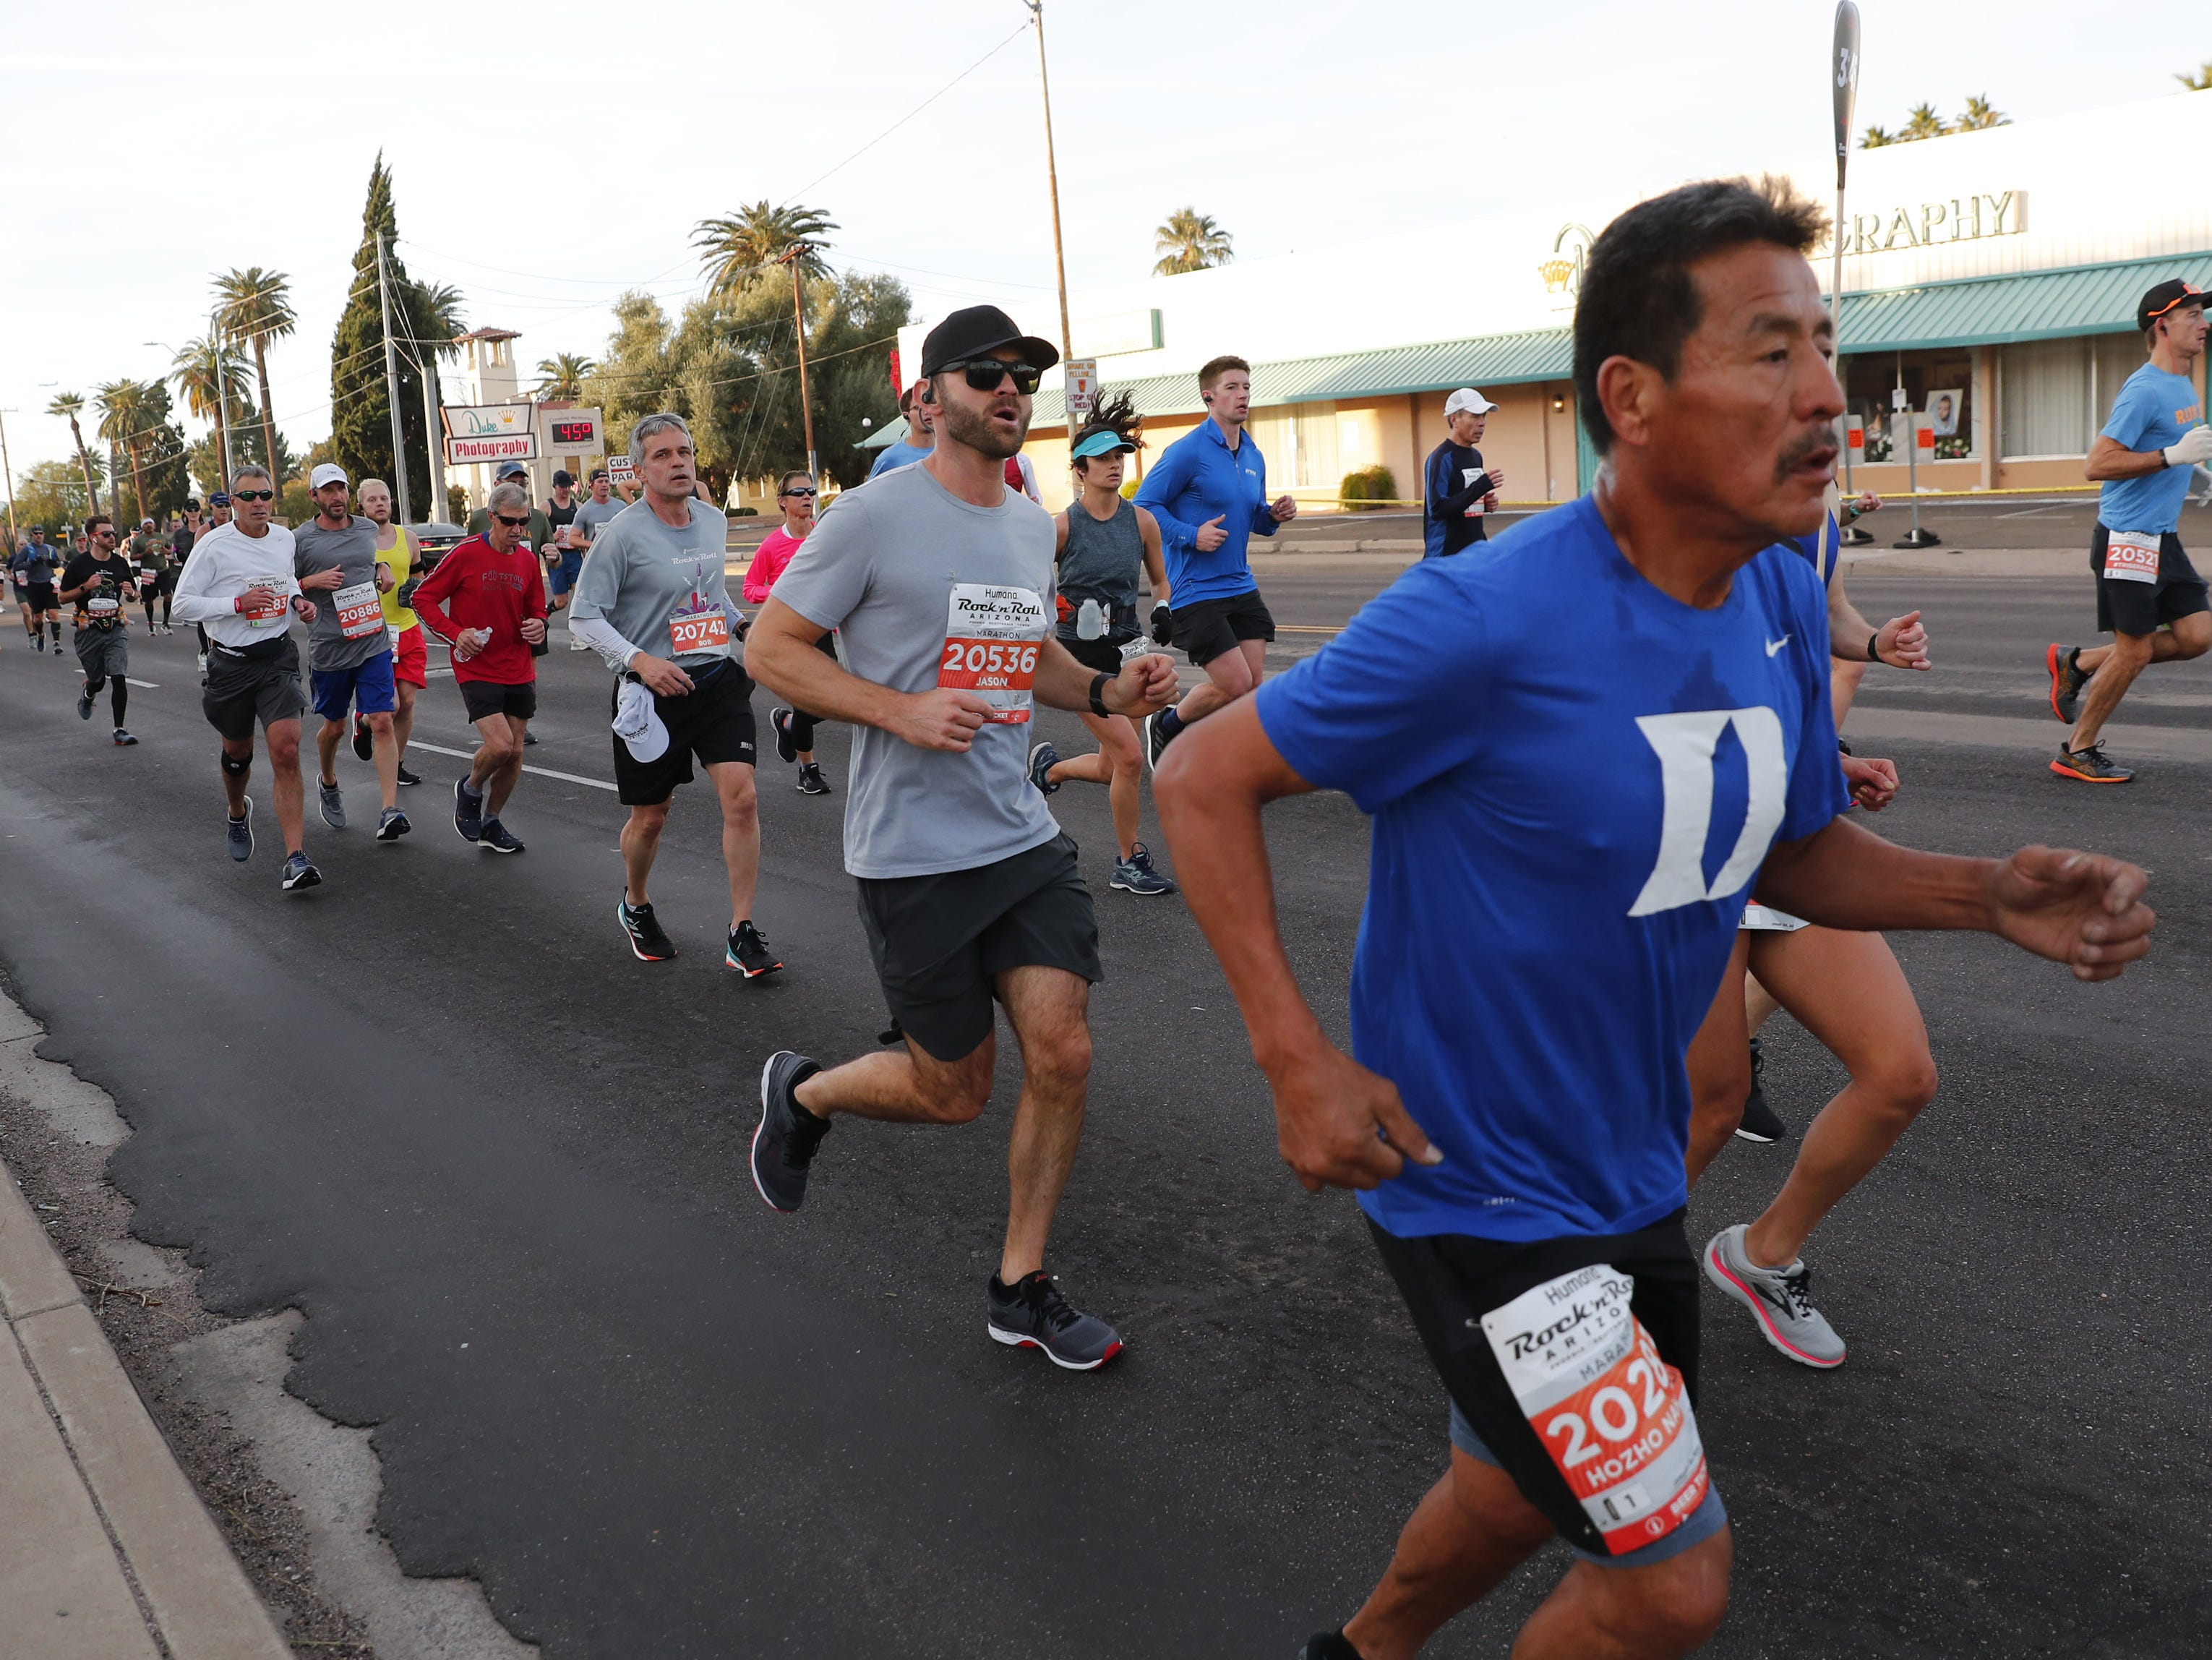 Runners make their way on 7th Ave. during the Rock 'n' Roll Marathon in Phoenix, Jan. 20, 2019.